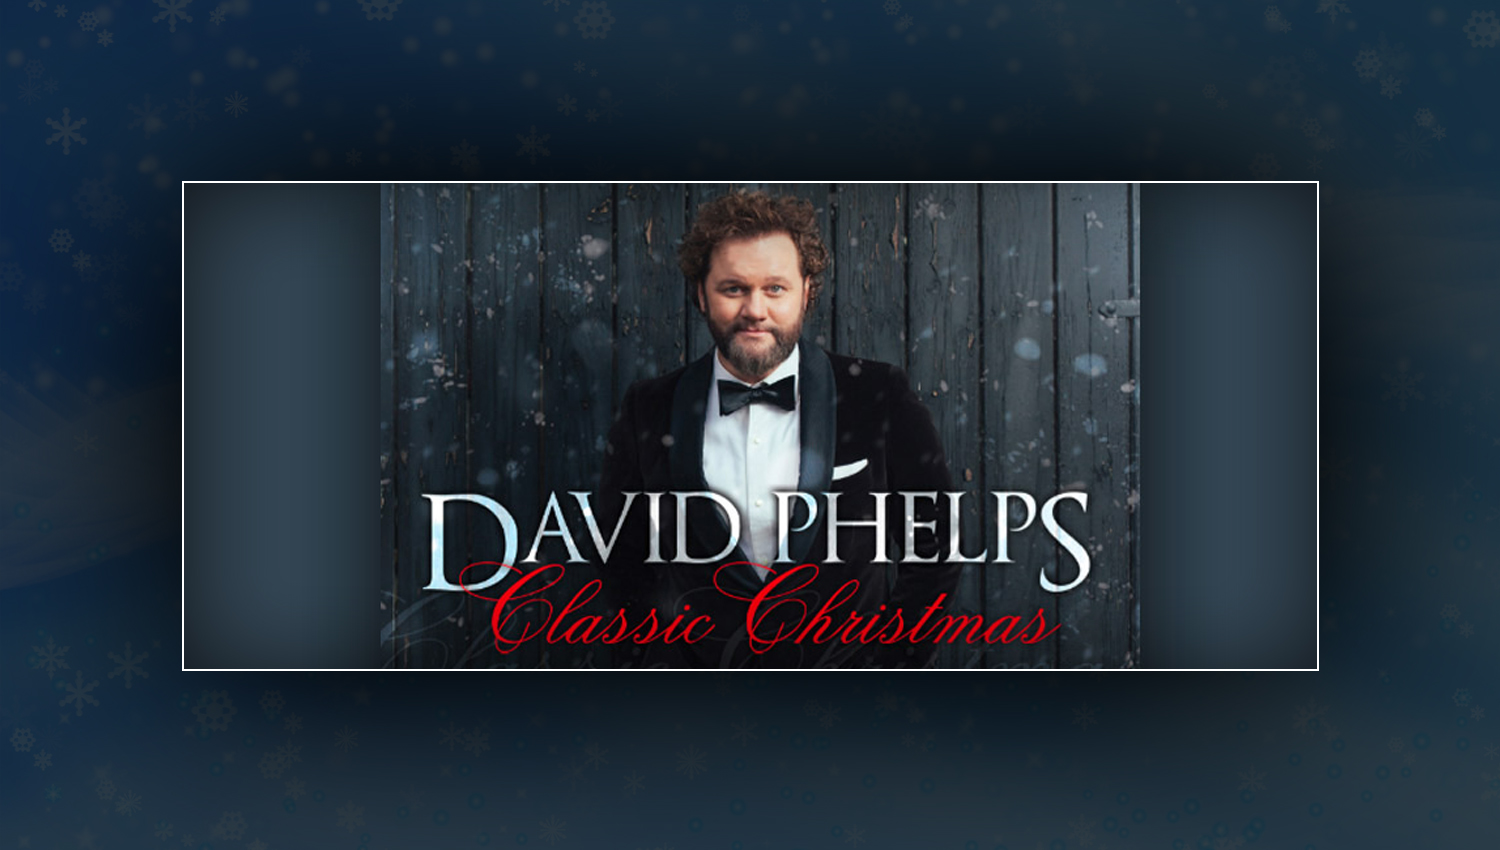 David Phelps Classic Christmas